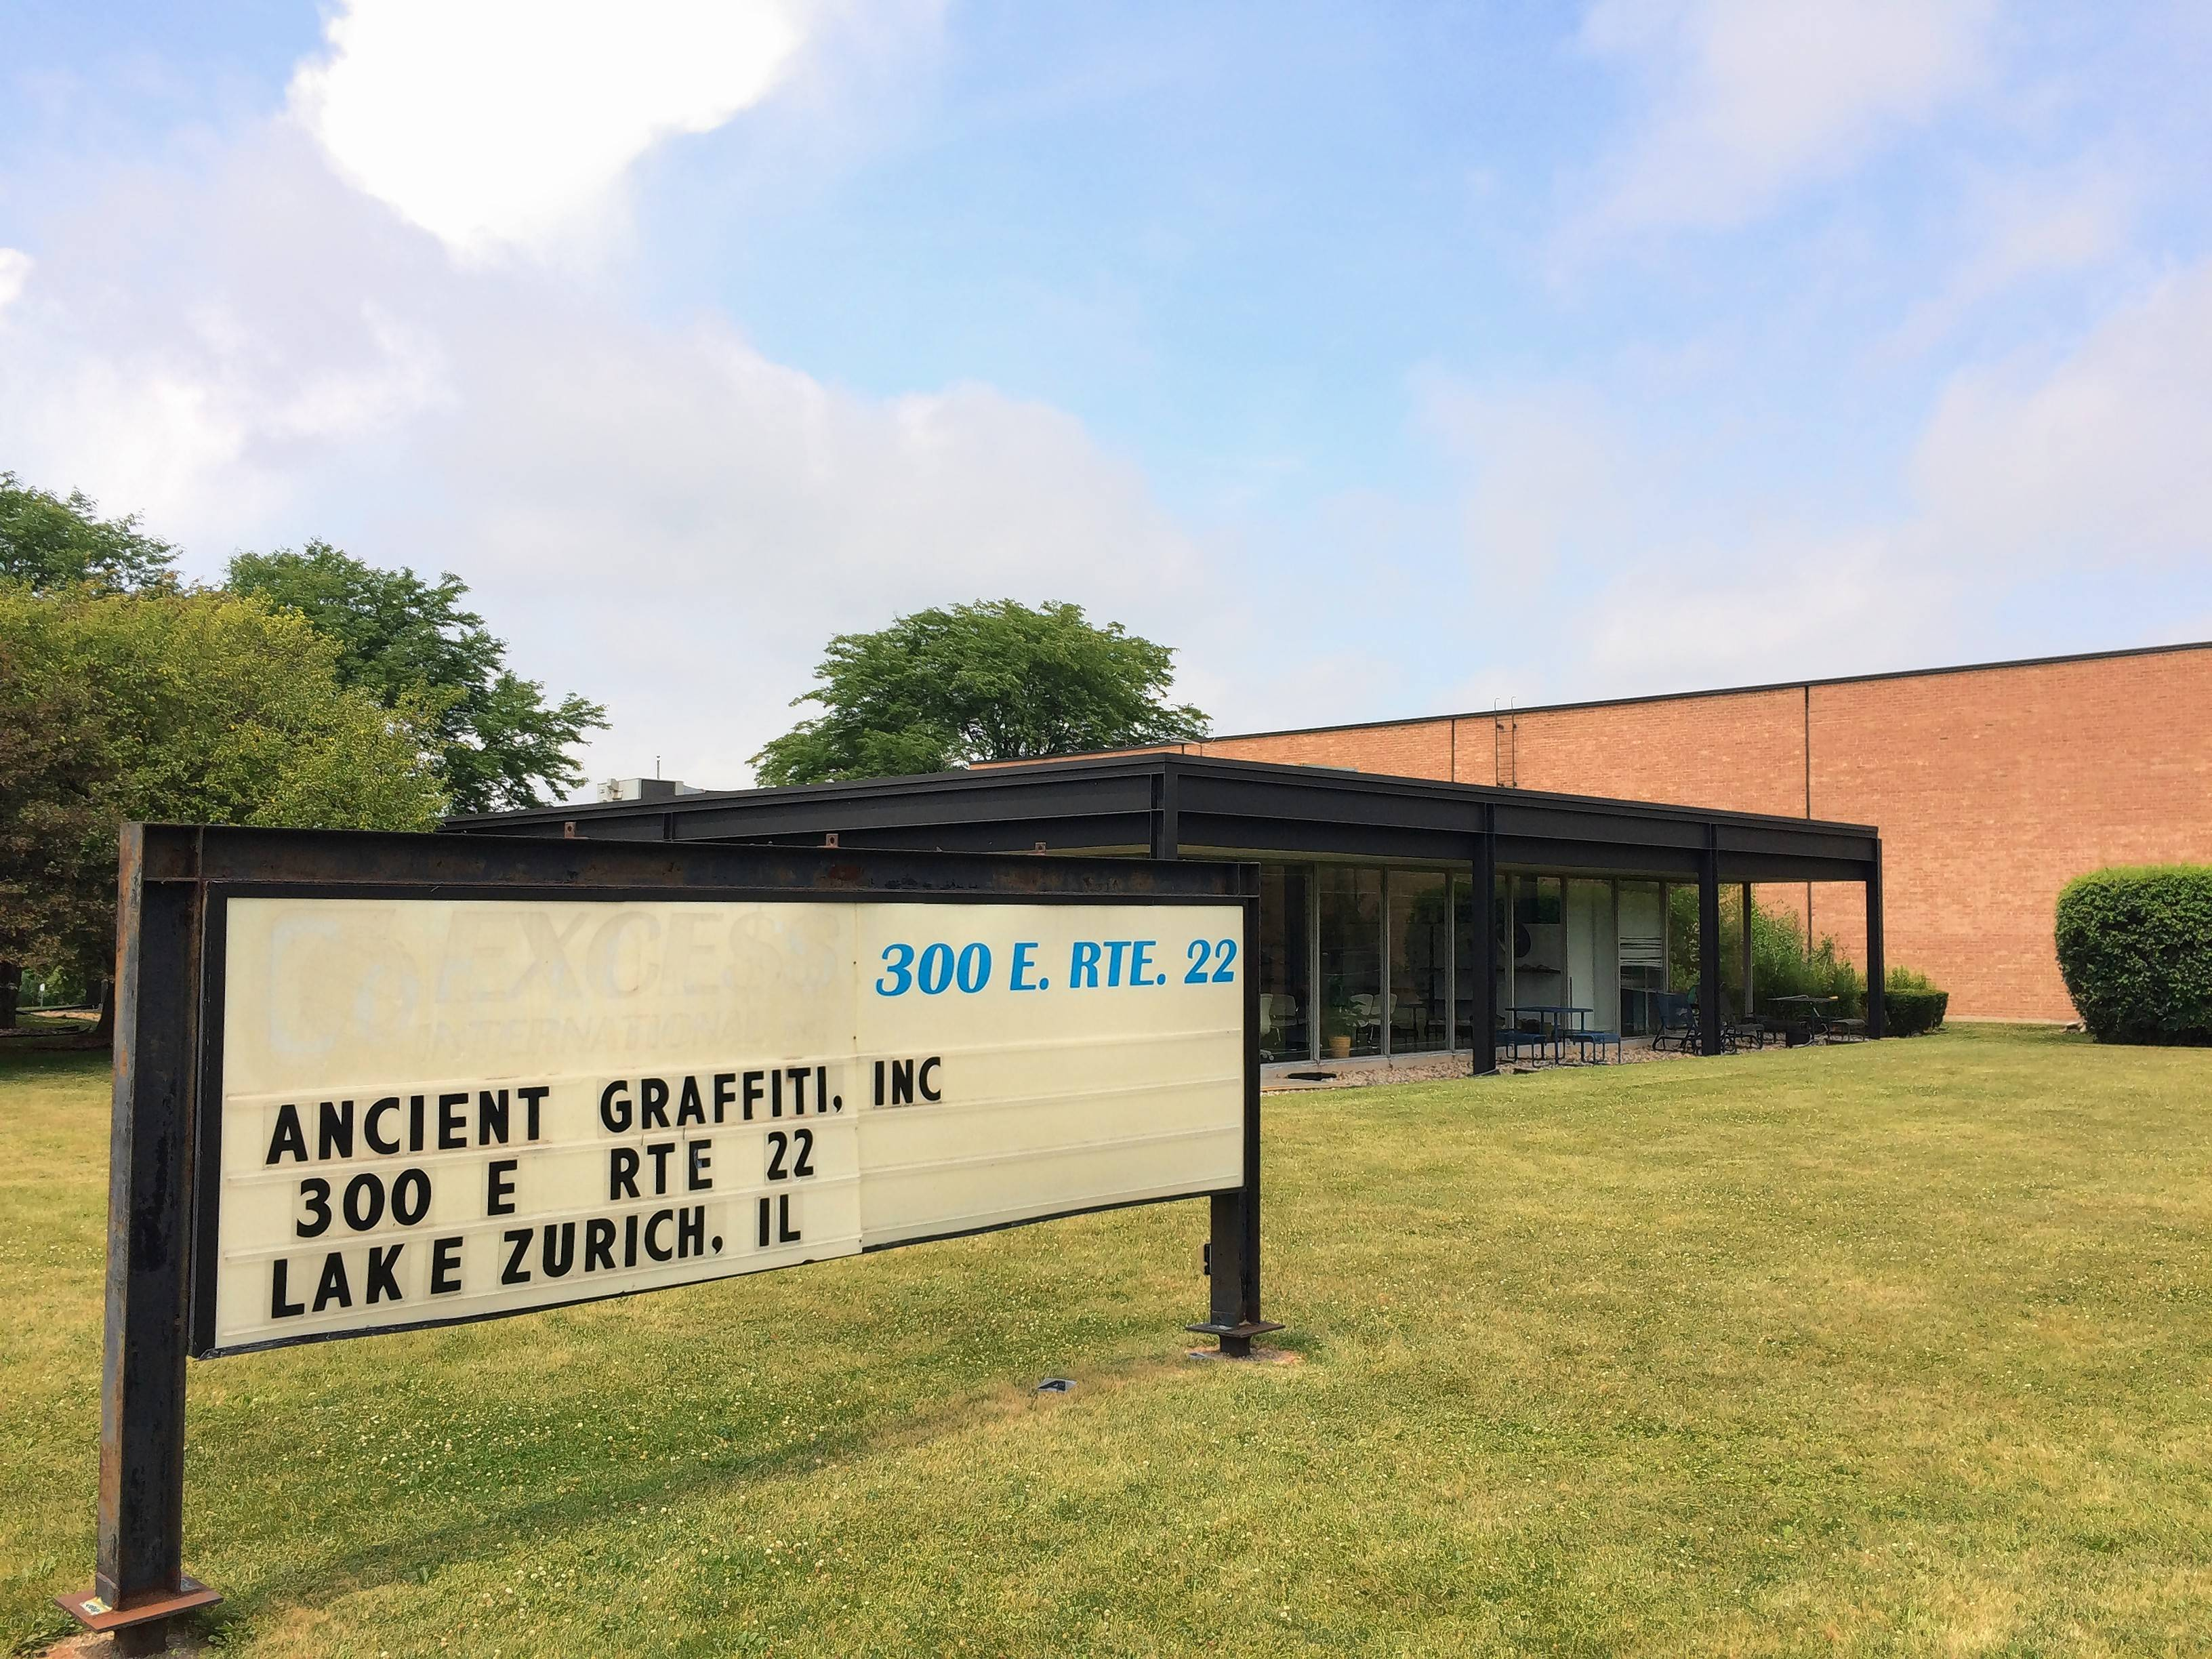 Life Storage Has Gained Lake Zurich Village Board Approval To Open In This  Building On The